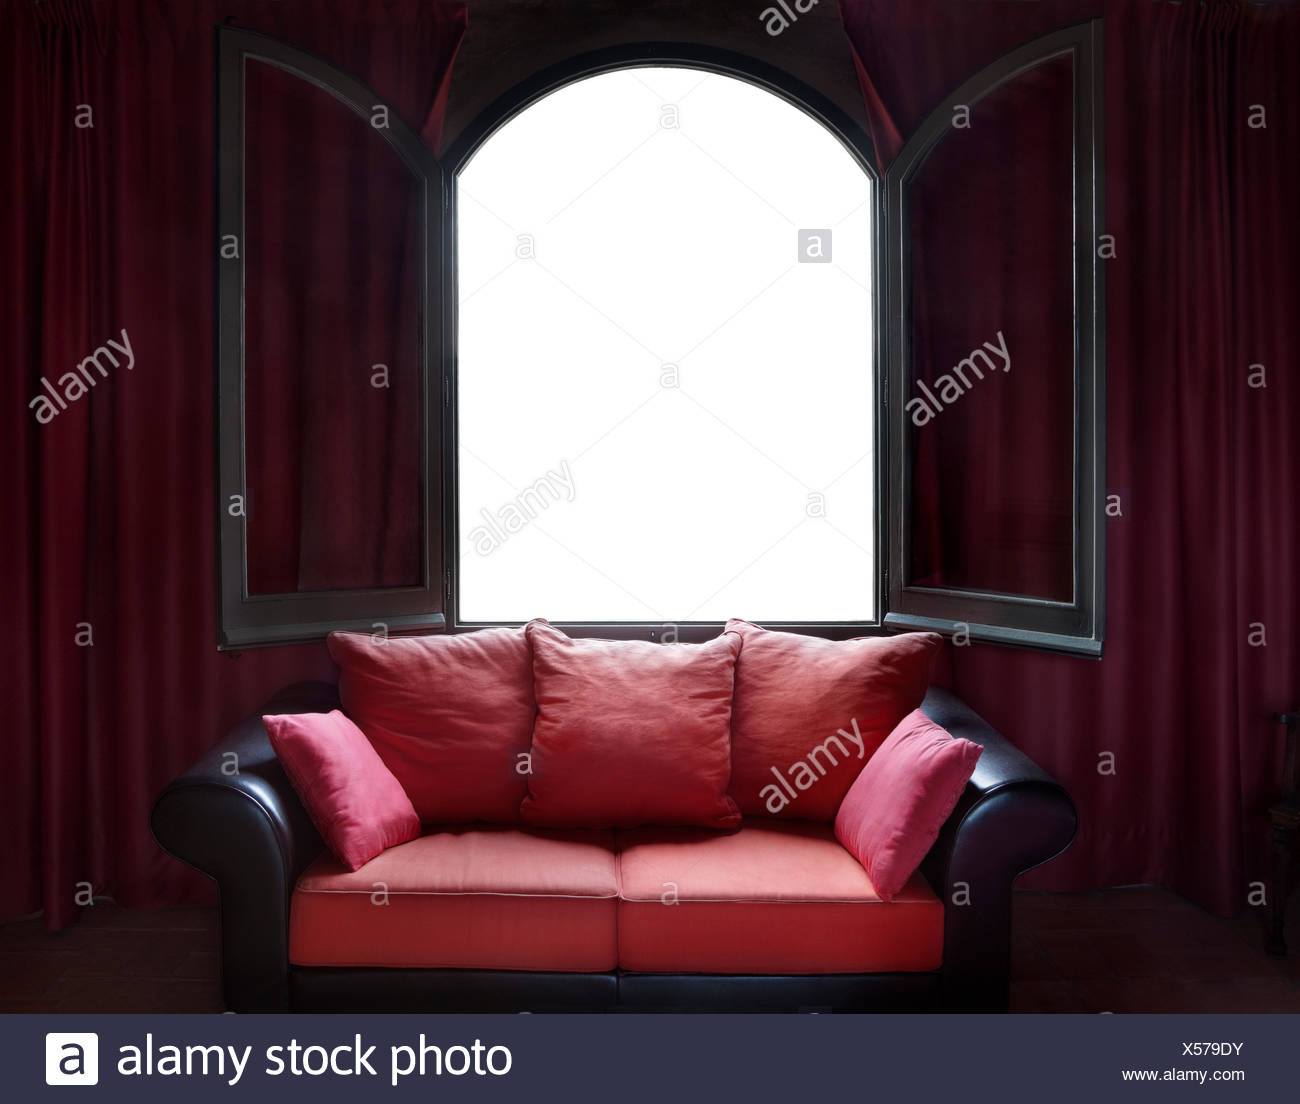 Sofa Near Window Stock Photos Sofa Near Window Stock Images Page